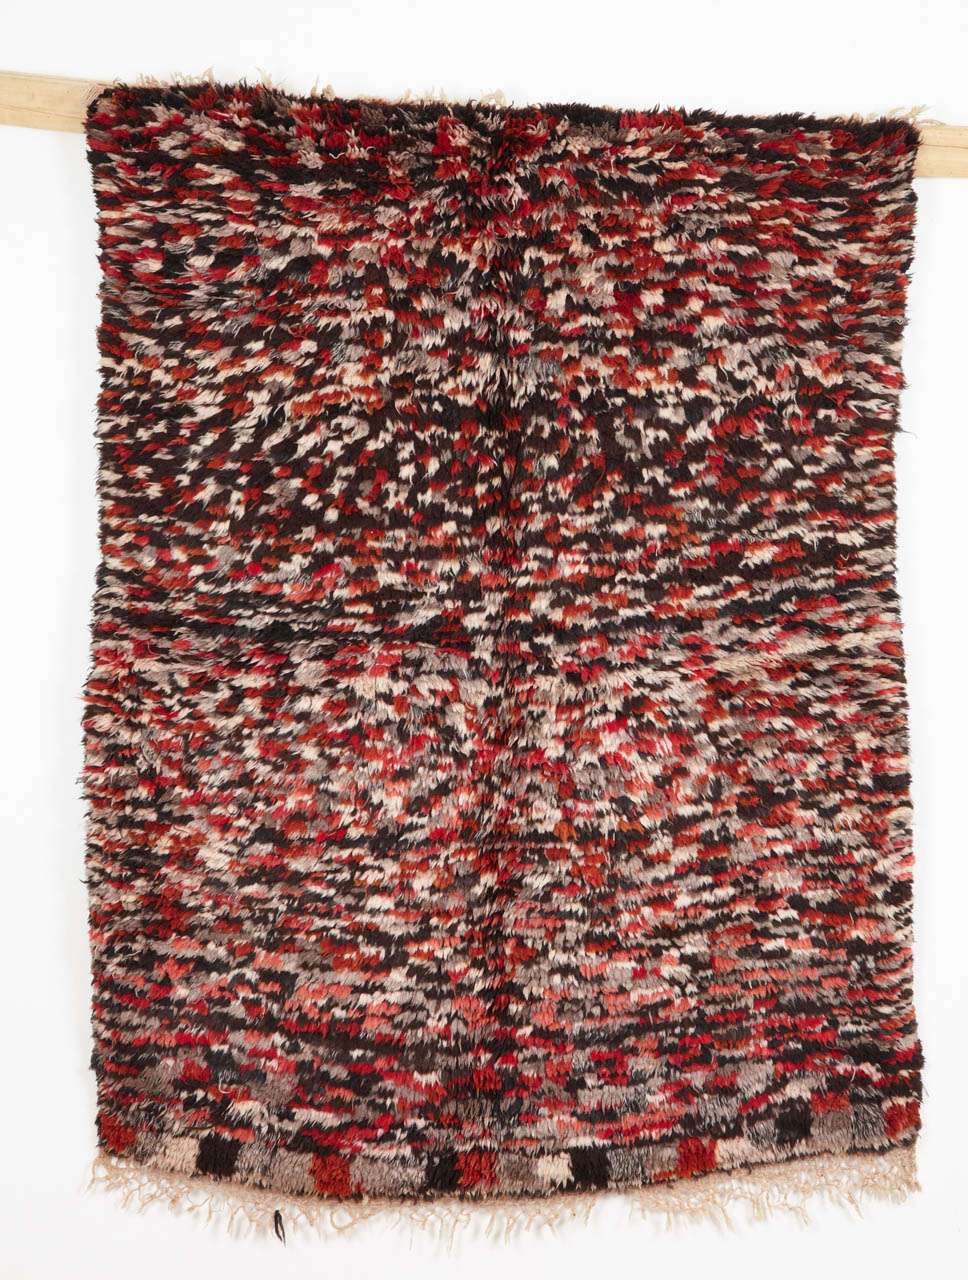 Azilal weavings are often distinguished by a floppy handle and by a relatively thick pile height. This example shows a very dense rendition of the checkerboard pattern, executed in shades of ivory, grey, black and red.